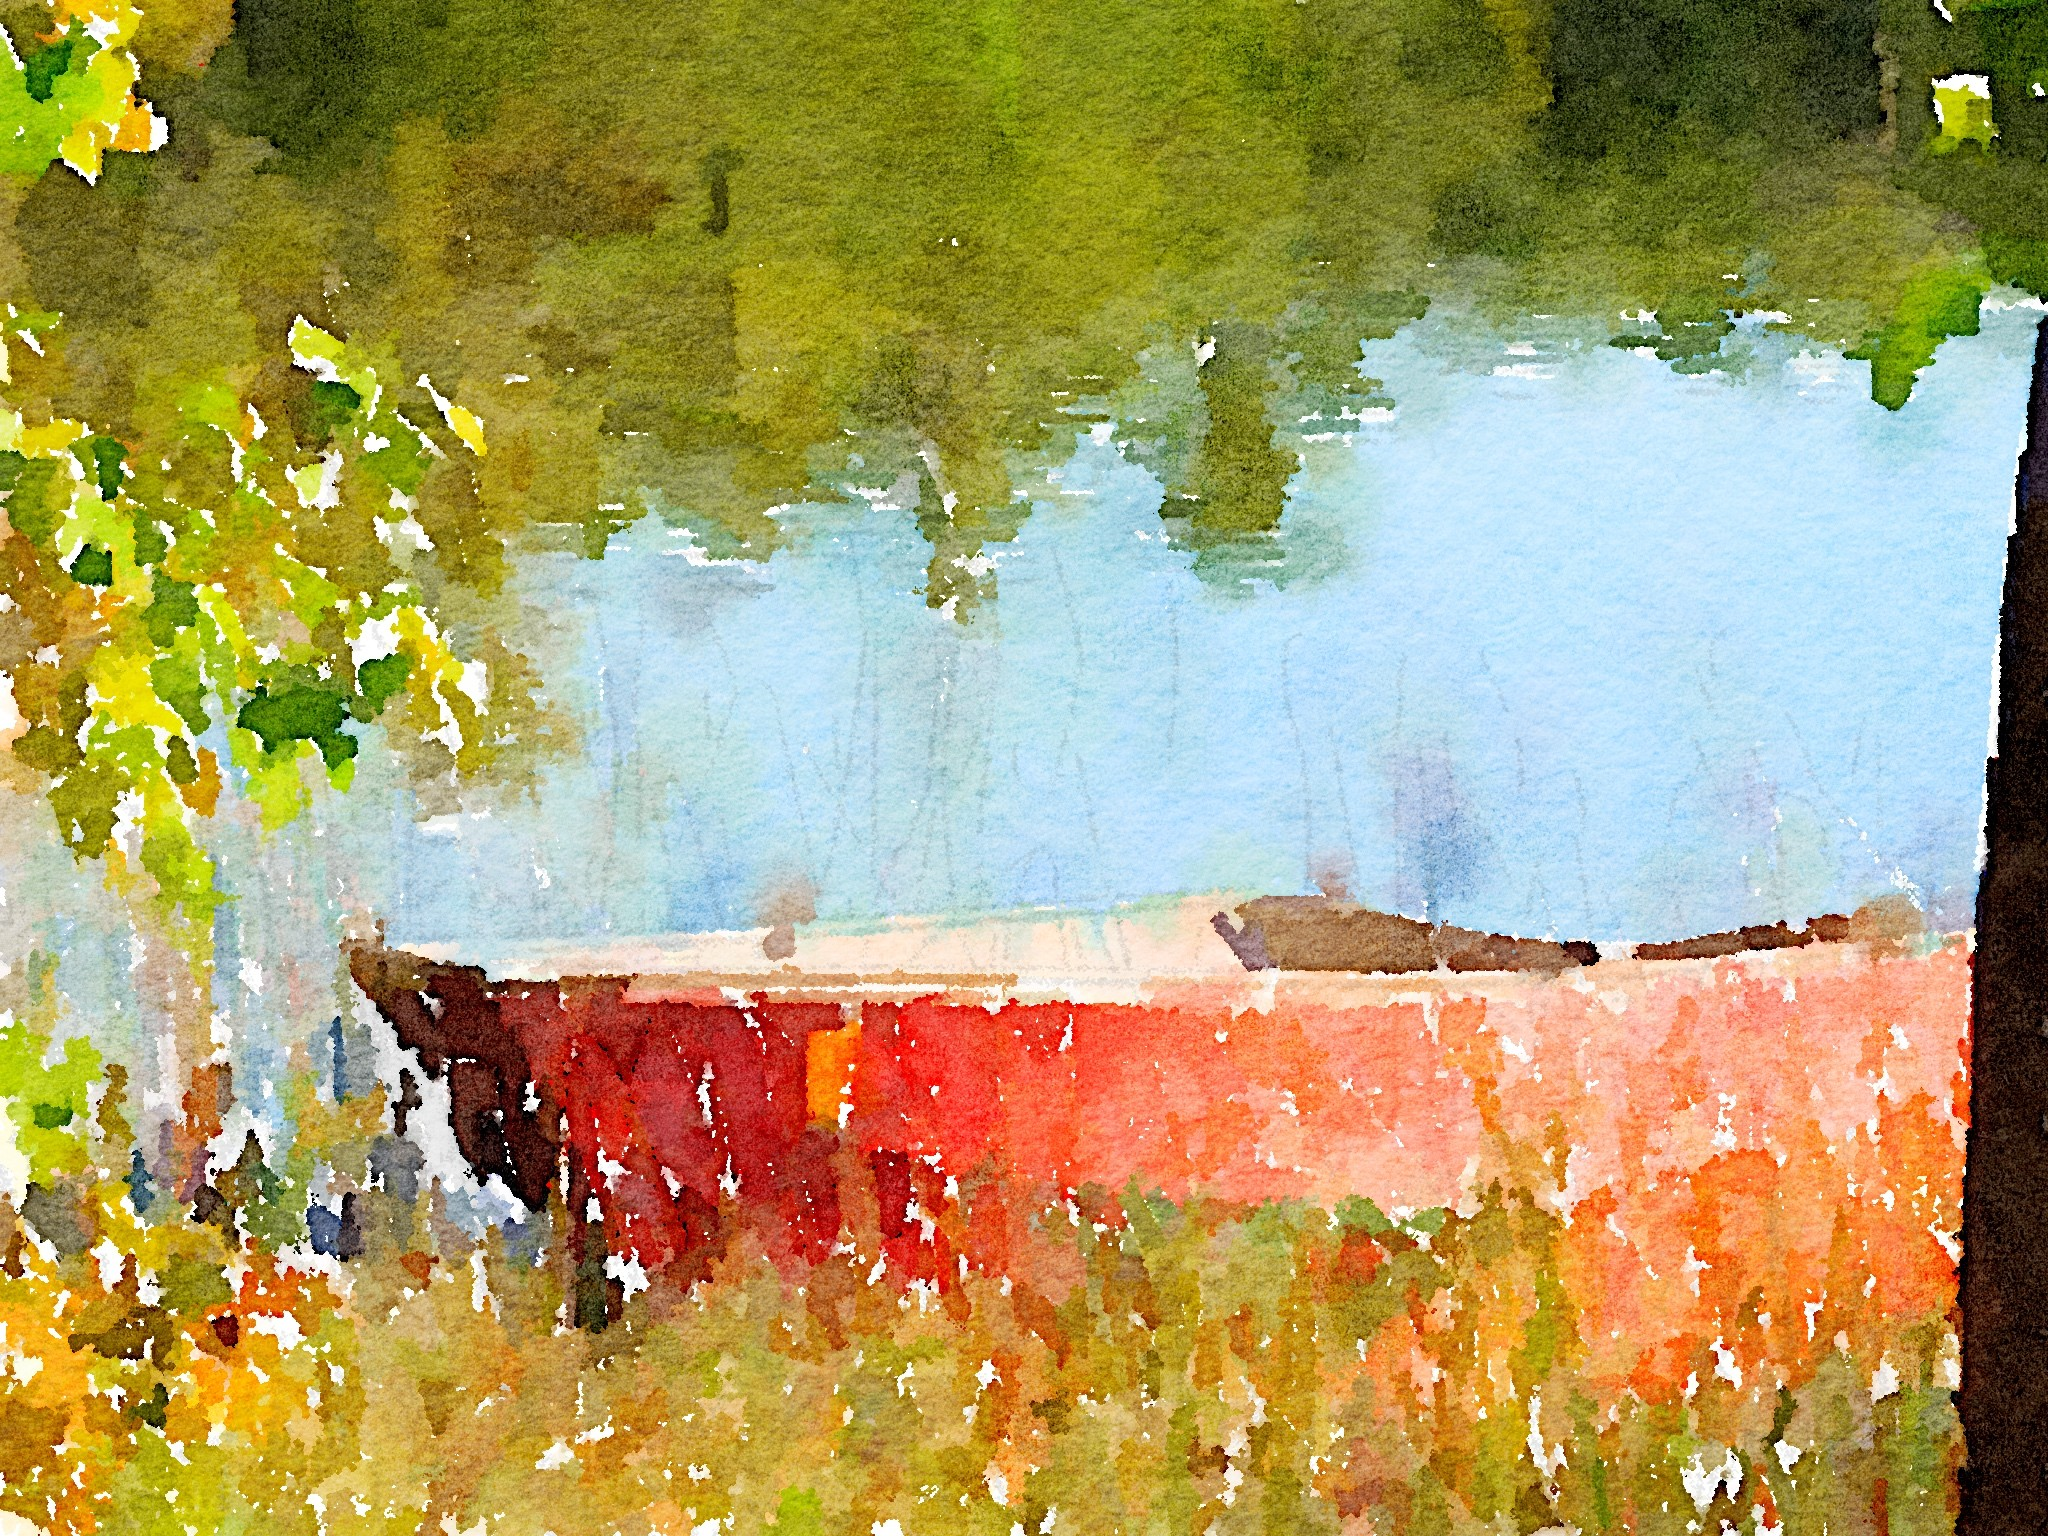 Rowboat Photo